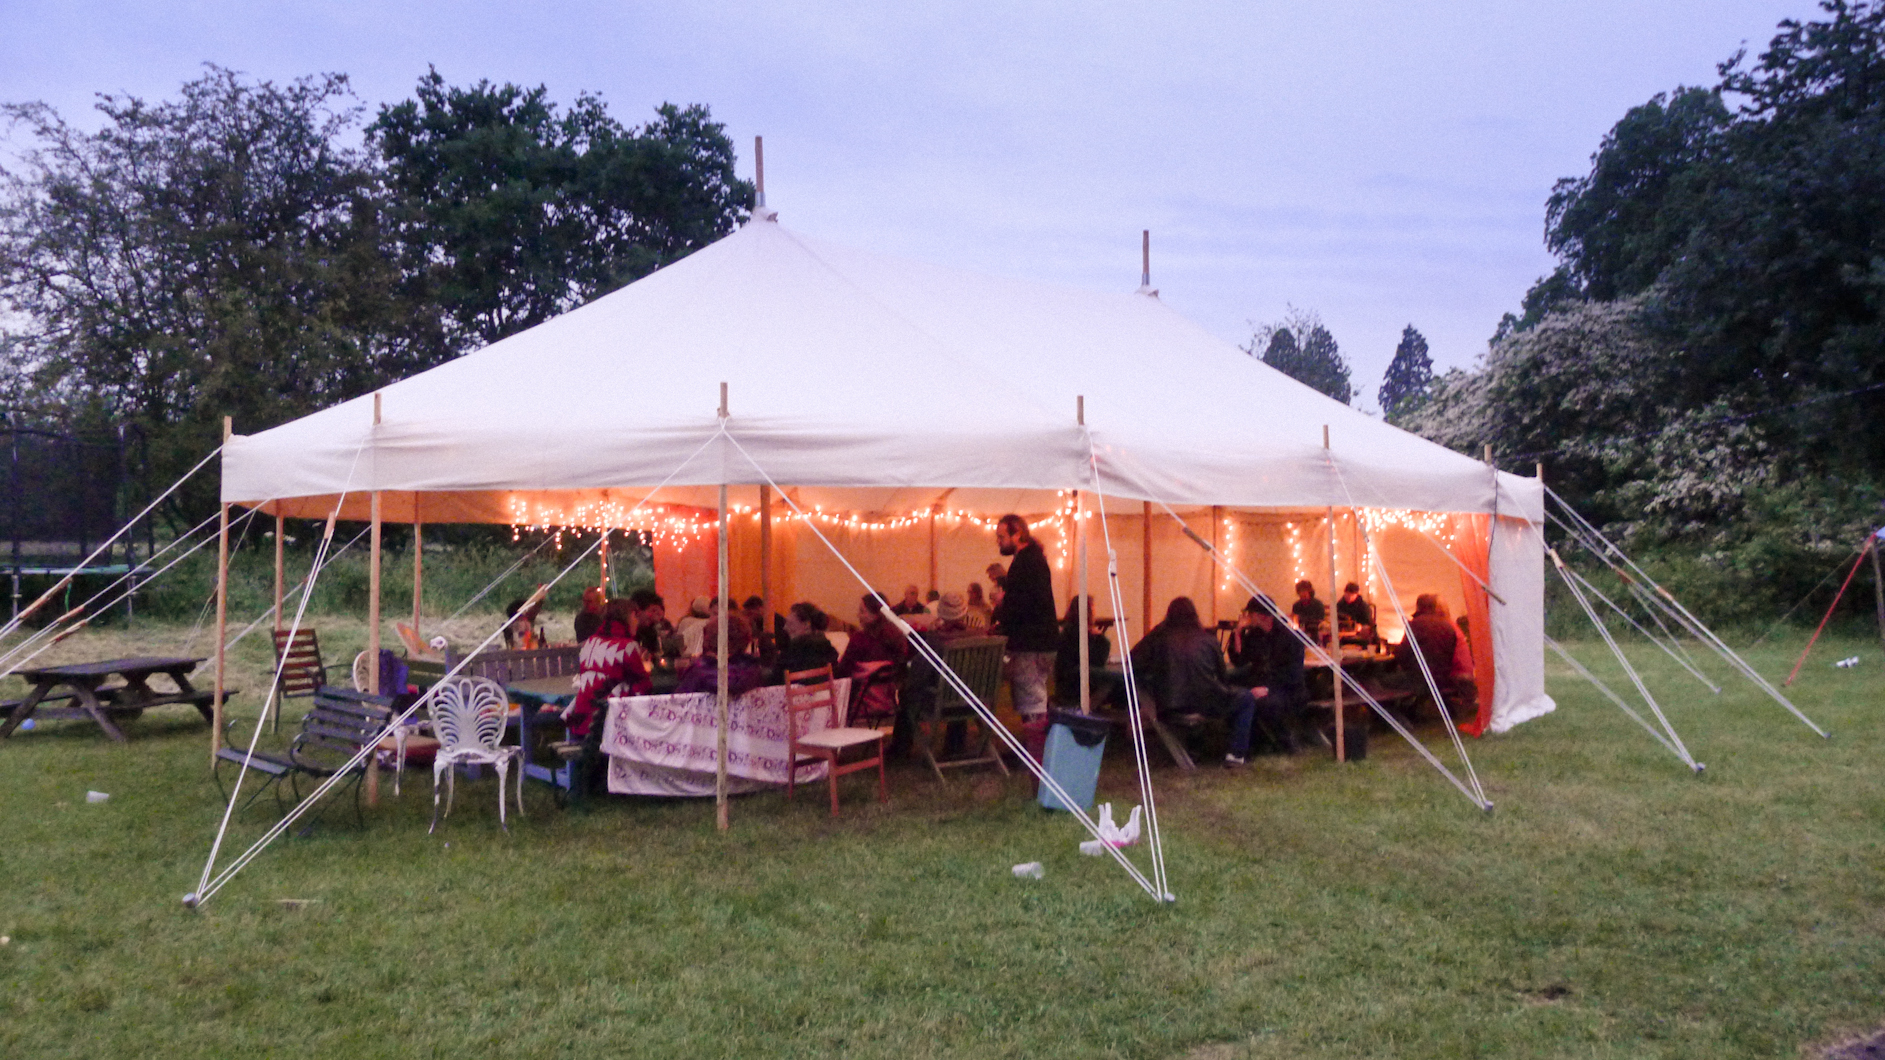 & Ambience in our traditional canvas marquee - World Tents